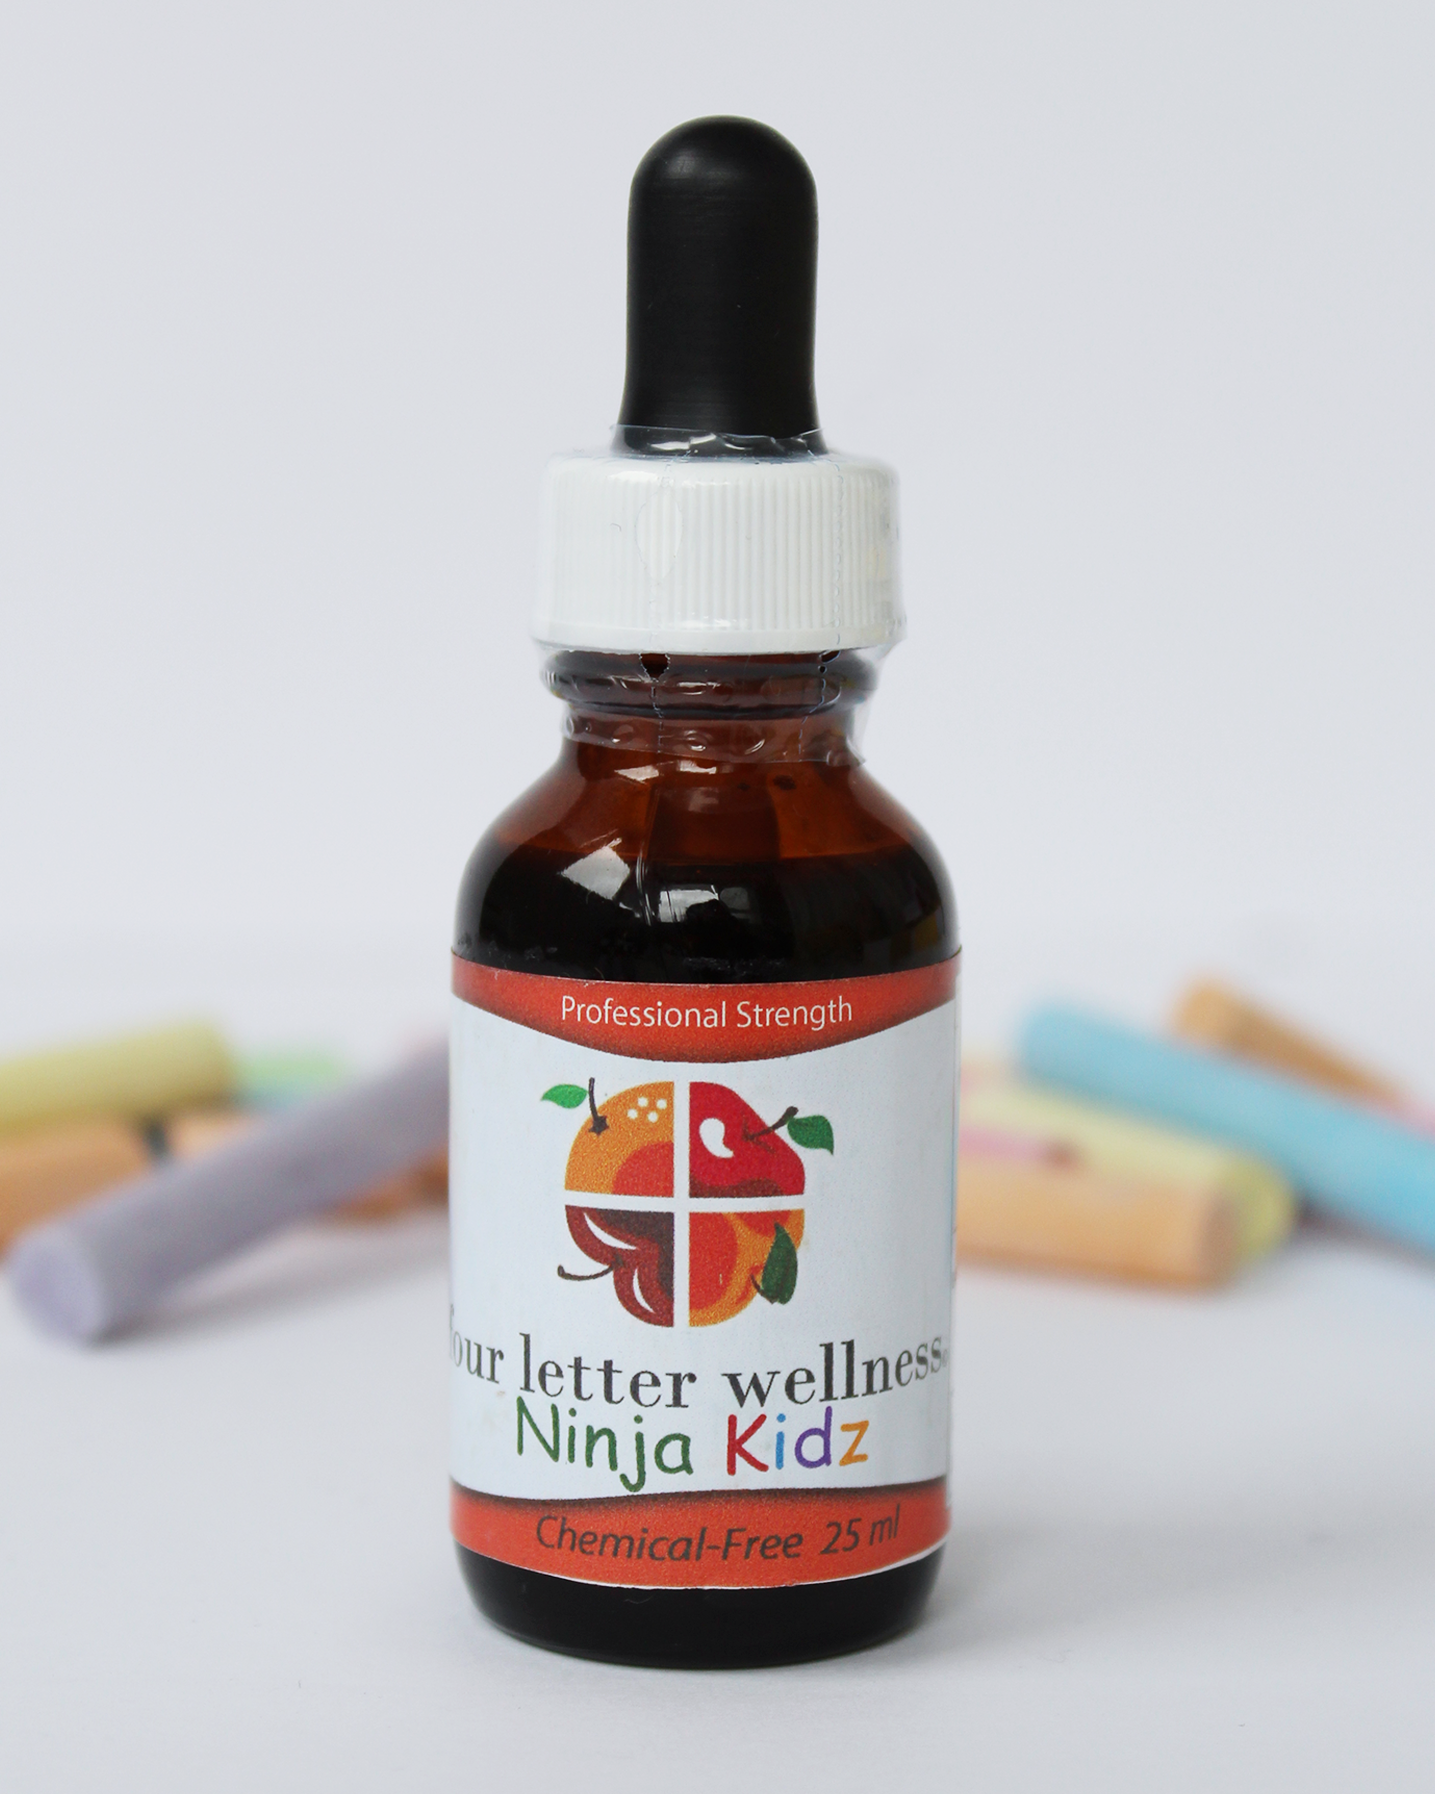 Ninja Kidz - Herbal Tincture 00004